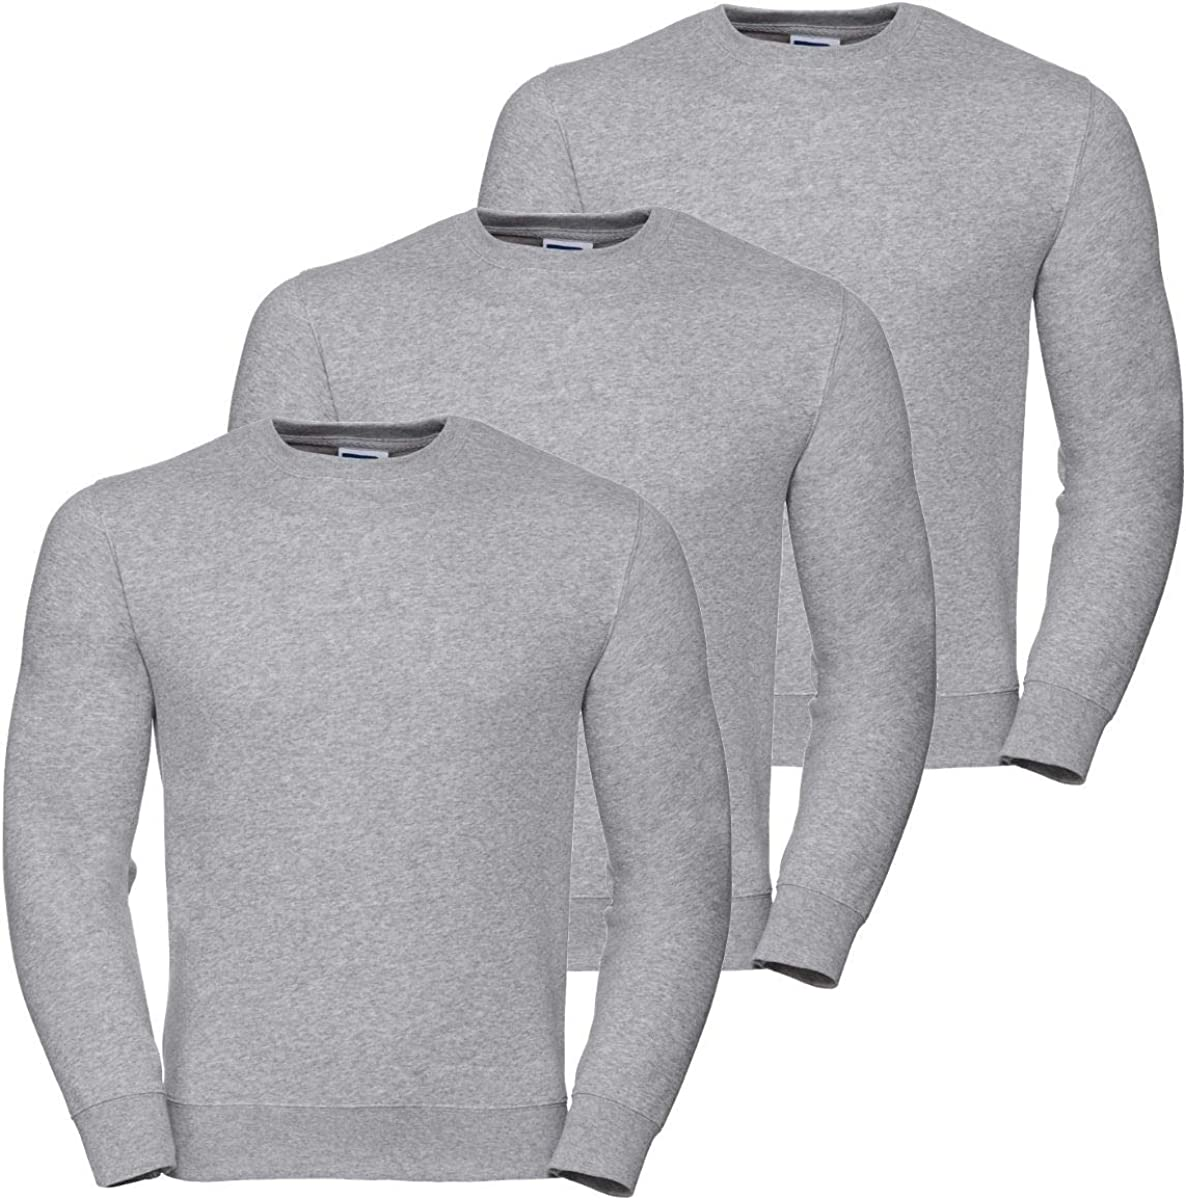 Style It Up New Mens Brushed Fleece Sweatshirt Jumper Heavy Duty Workwear Plain Casual Warm Big and Tall Plus Sizes